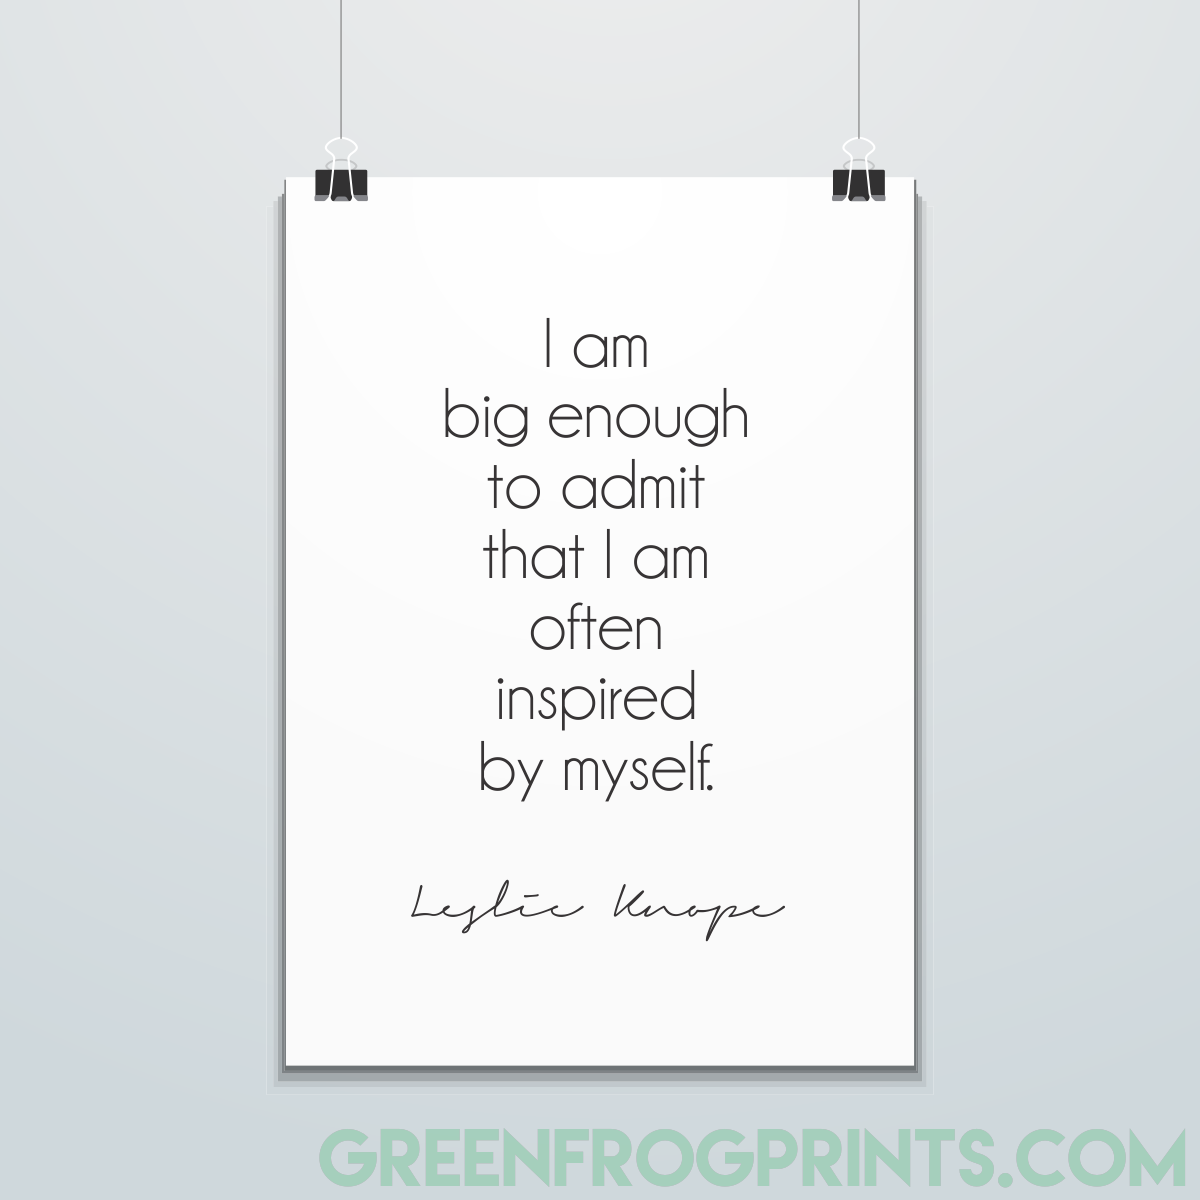 Parks and Rec Poster Leslie Knope Quote I am big enough to admit that I am often inspired by myself